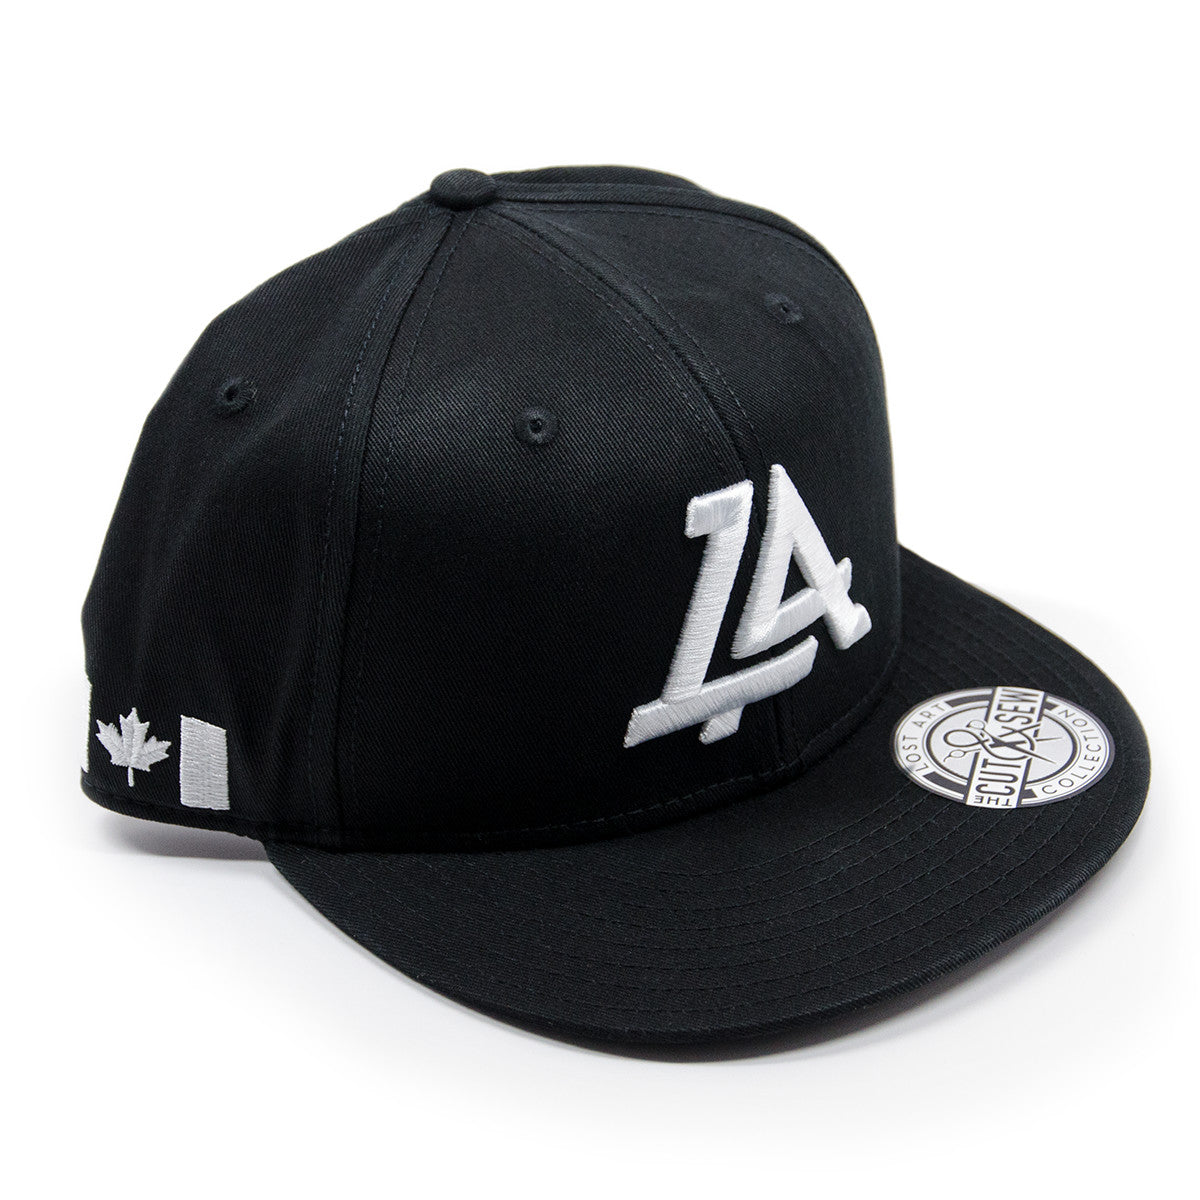 Lost Art Canada - white logo black snapback hat front view